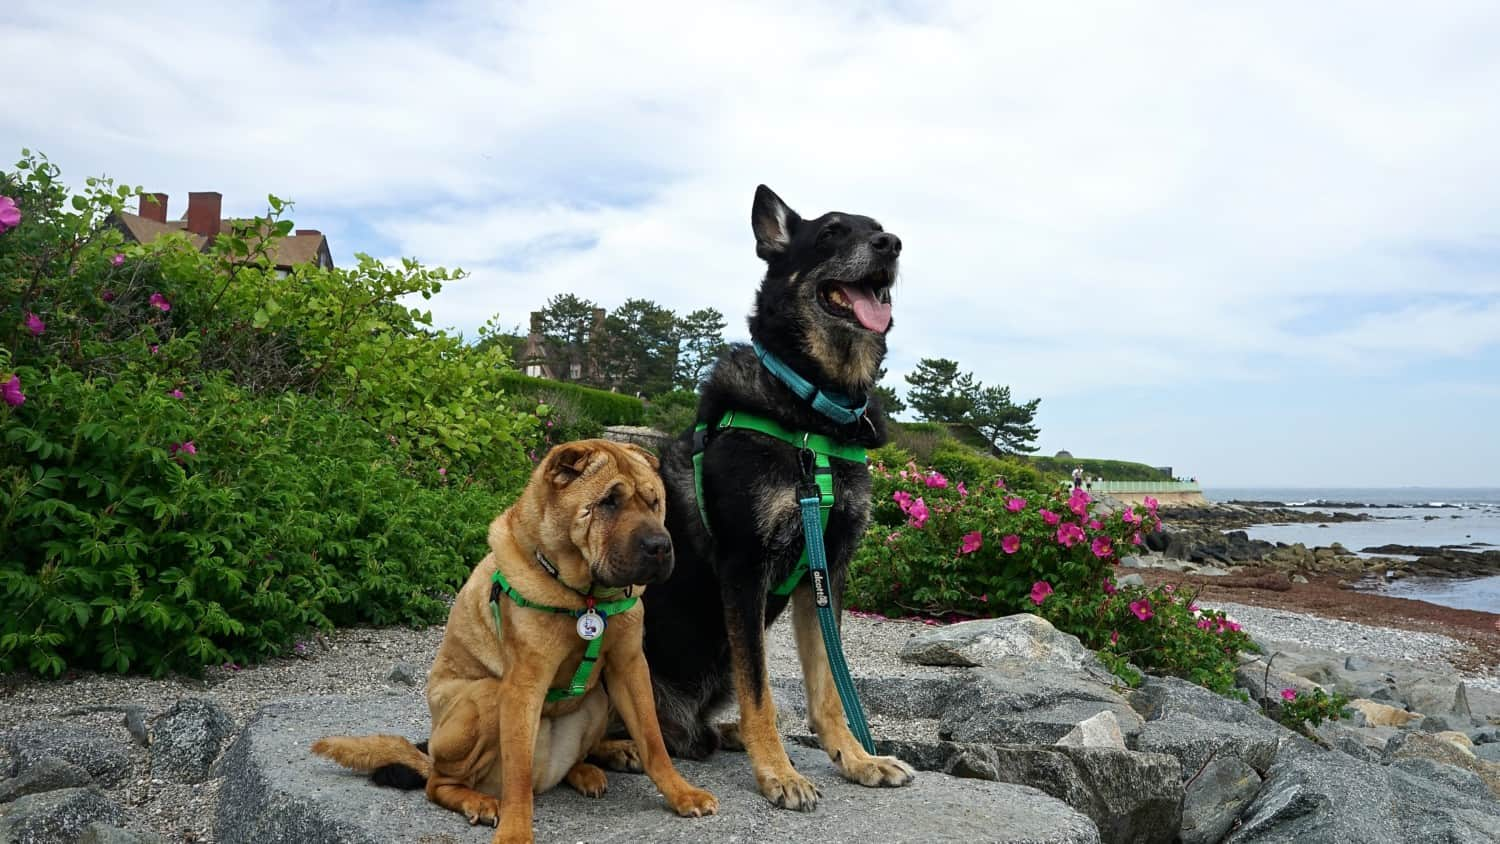 Rhode Island's Top Pet Friendly Attraction: Newport Cliff Walk